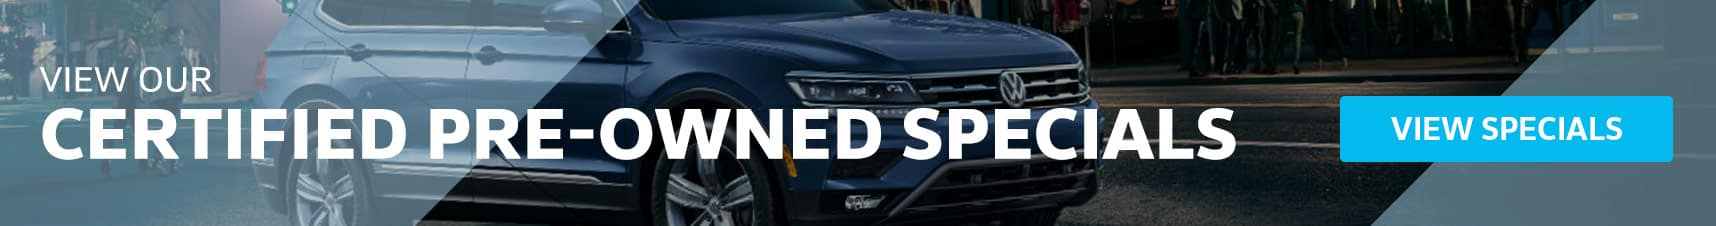 pre-owned specials banner